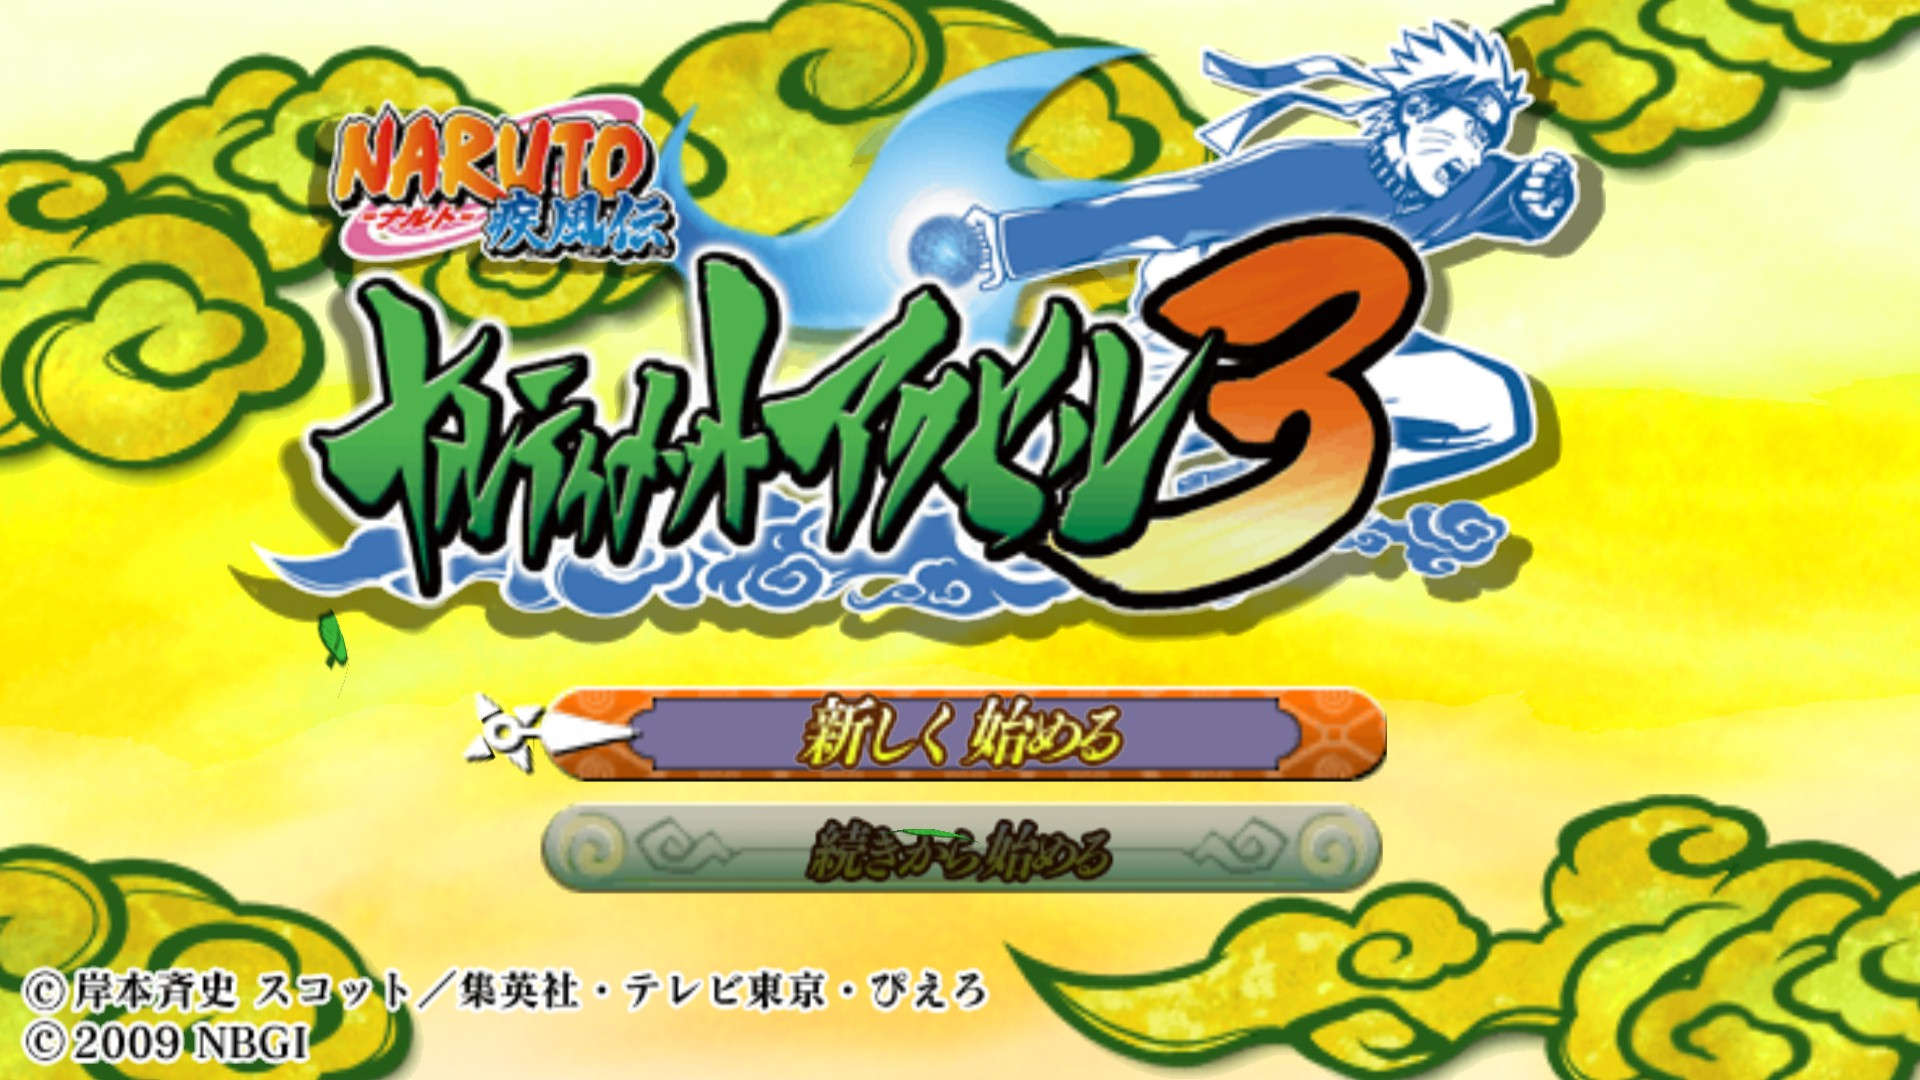 Tag; download game naruto shippuden ultimate ninja heroes 3 for ppsspp.